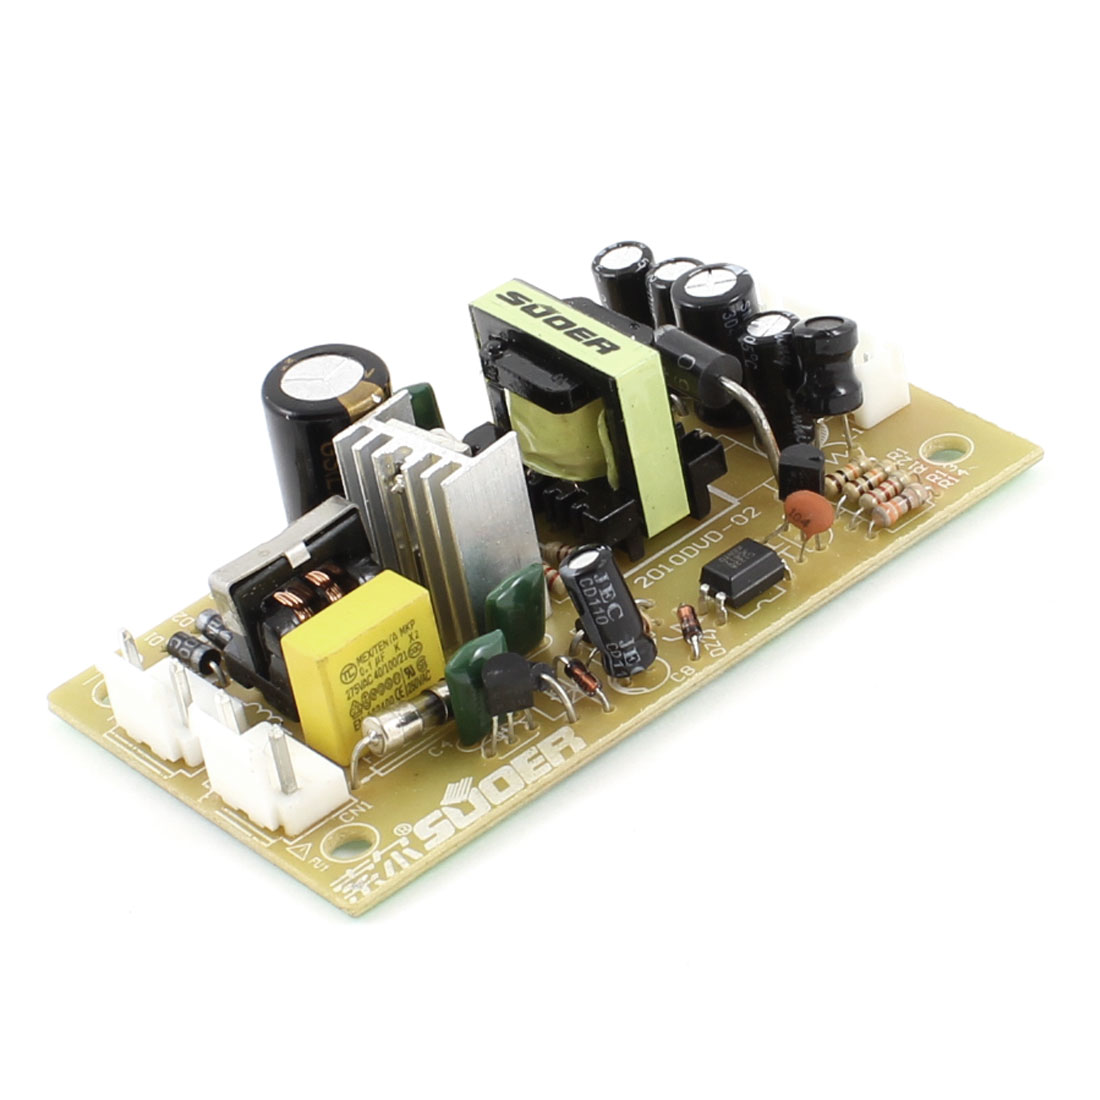 "Universal Spare Part Power Supply Board 3.3"" x 1.9"" x 0.9"" for DVD Players"